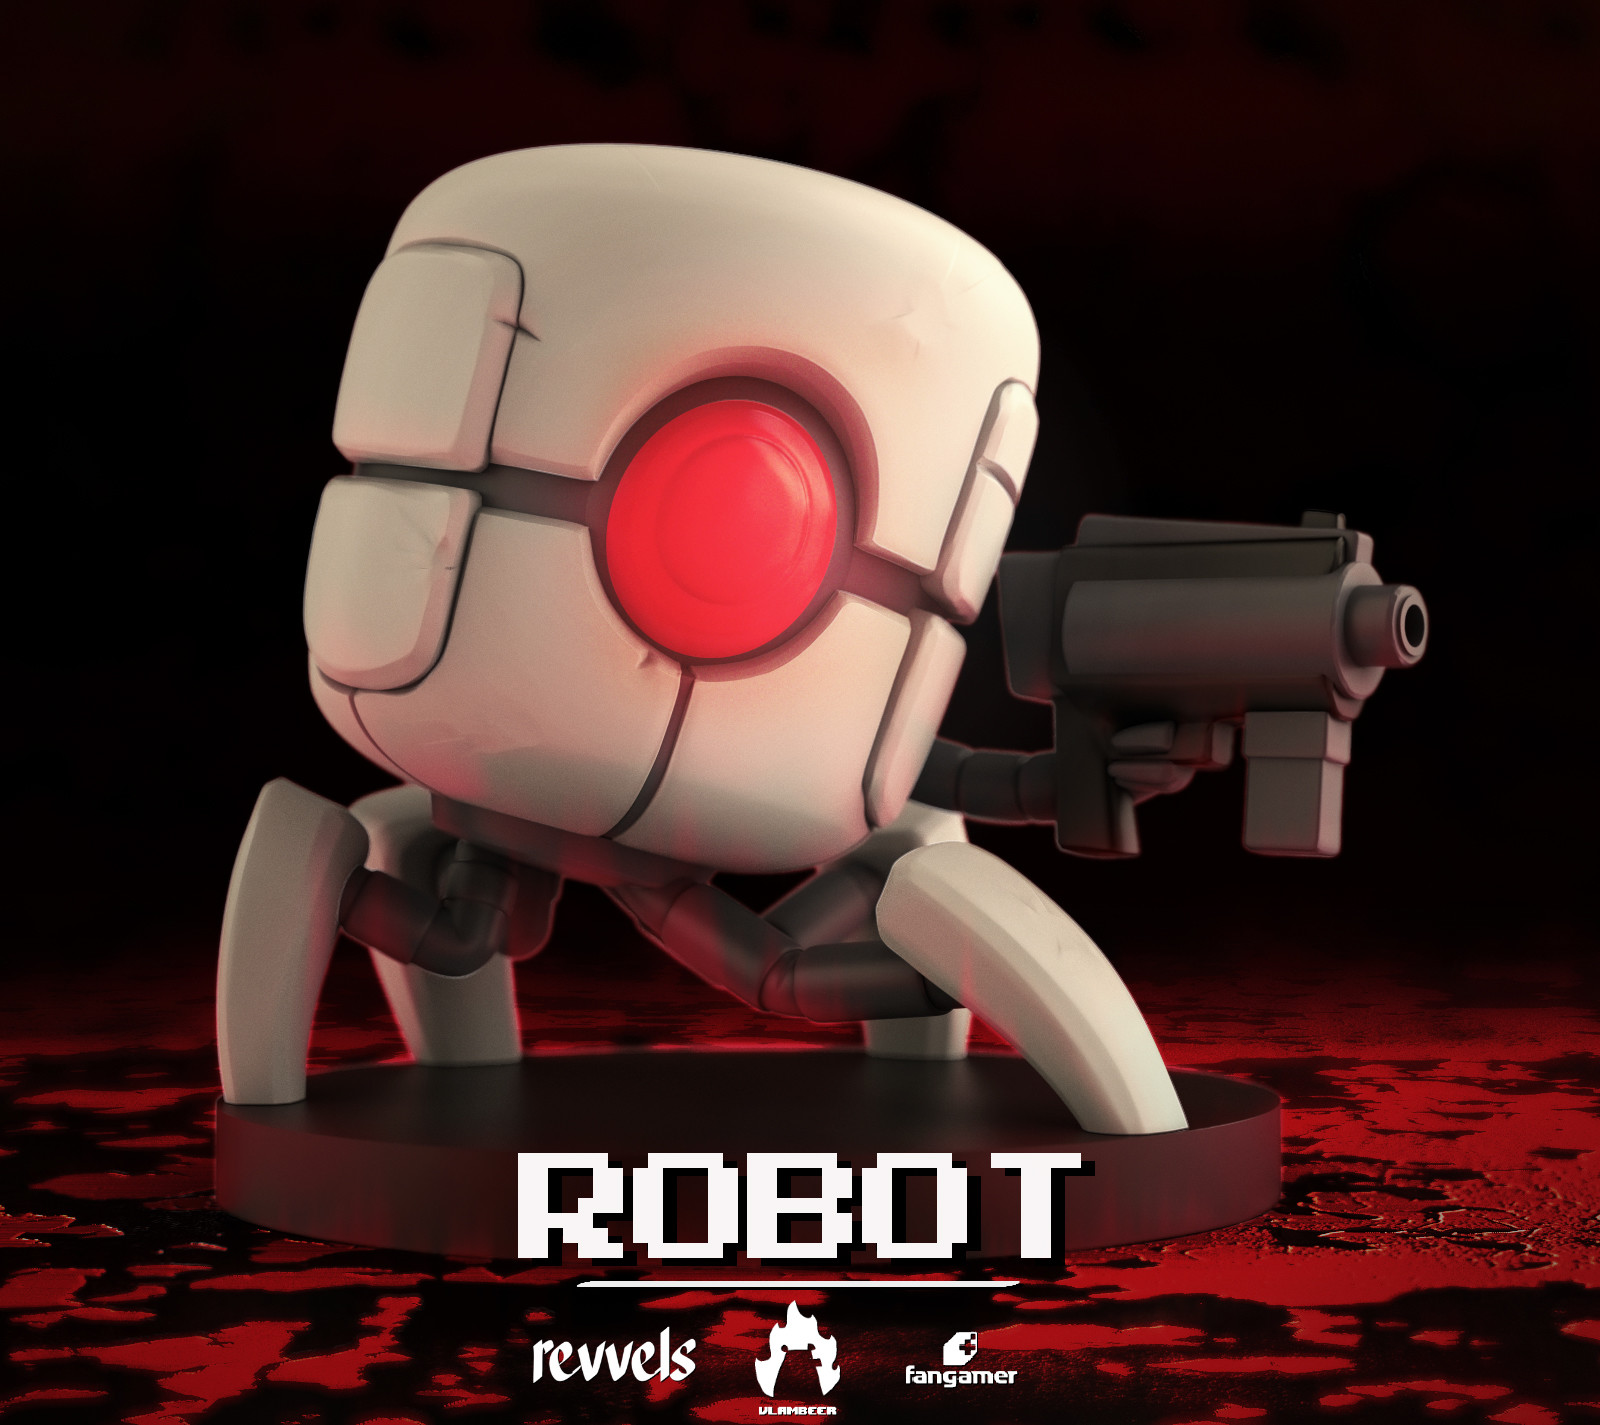 Nuclear Throne: Robot